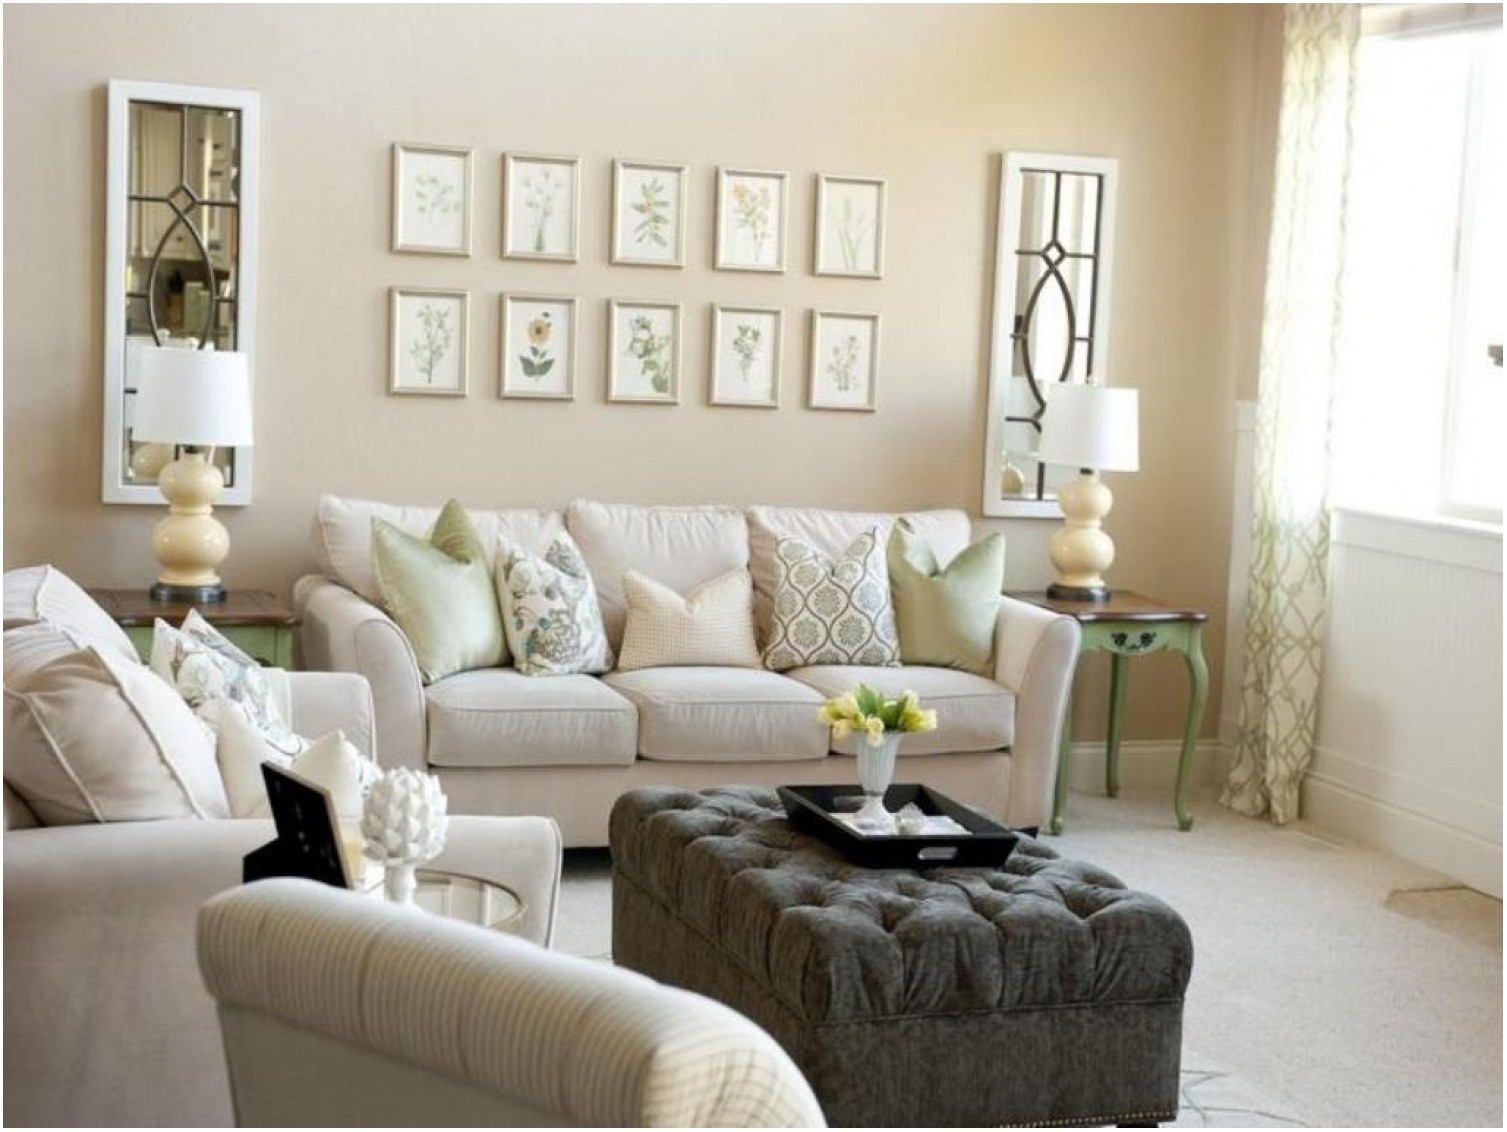 Popular Paint Colors For Small Living Rooms | Living room ...